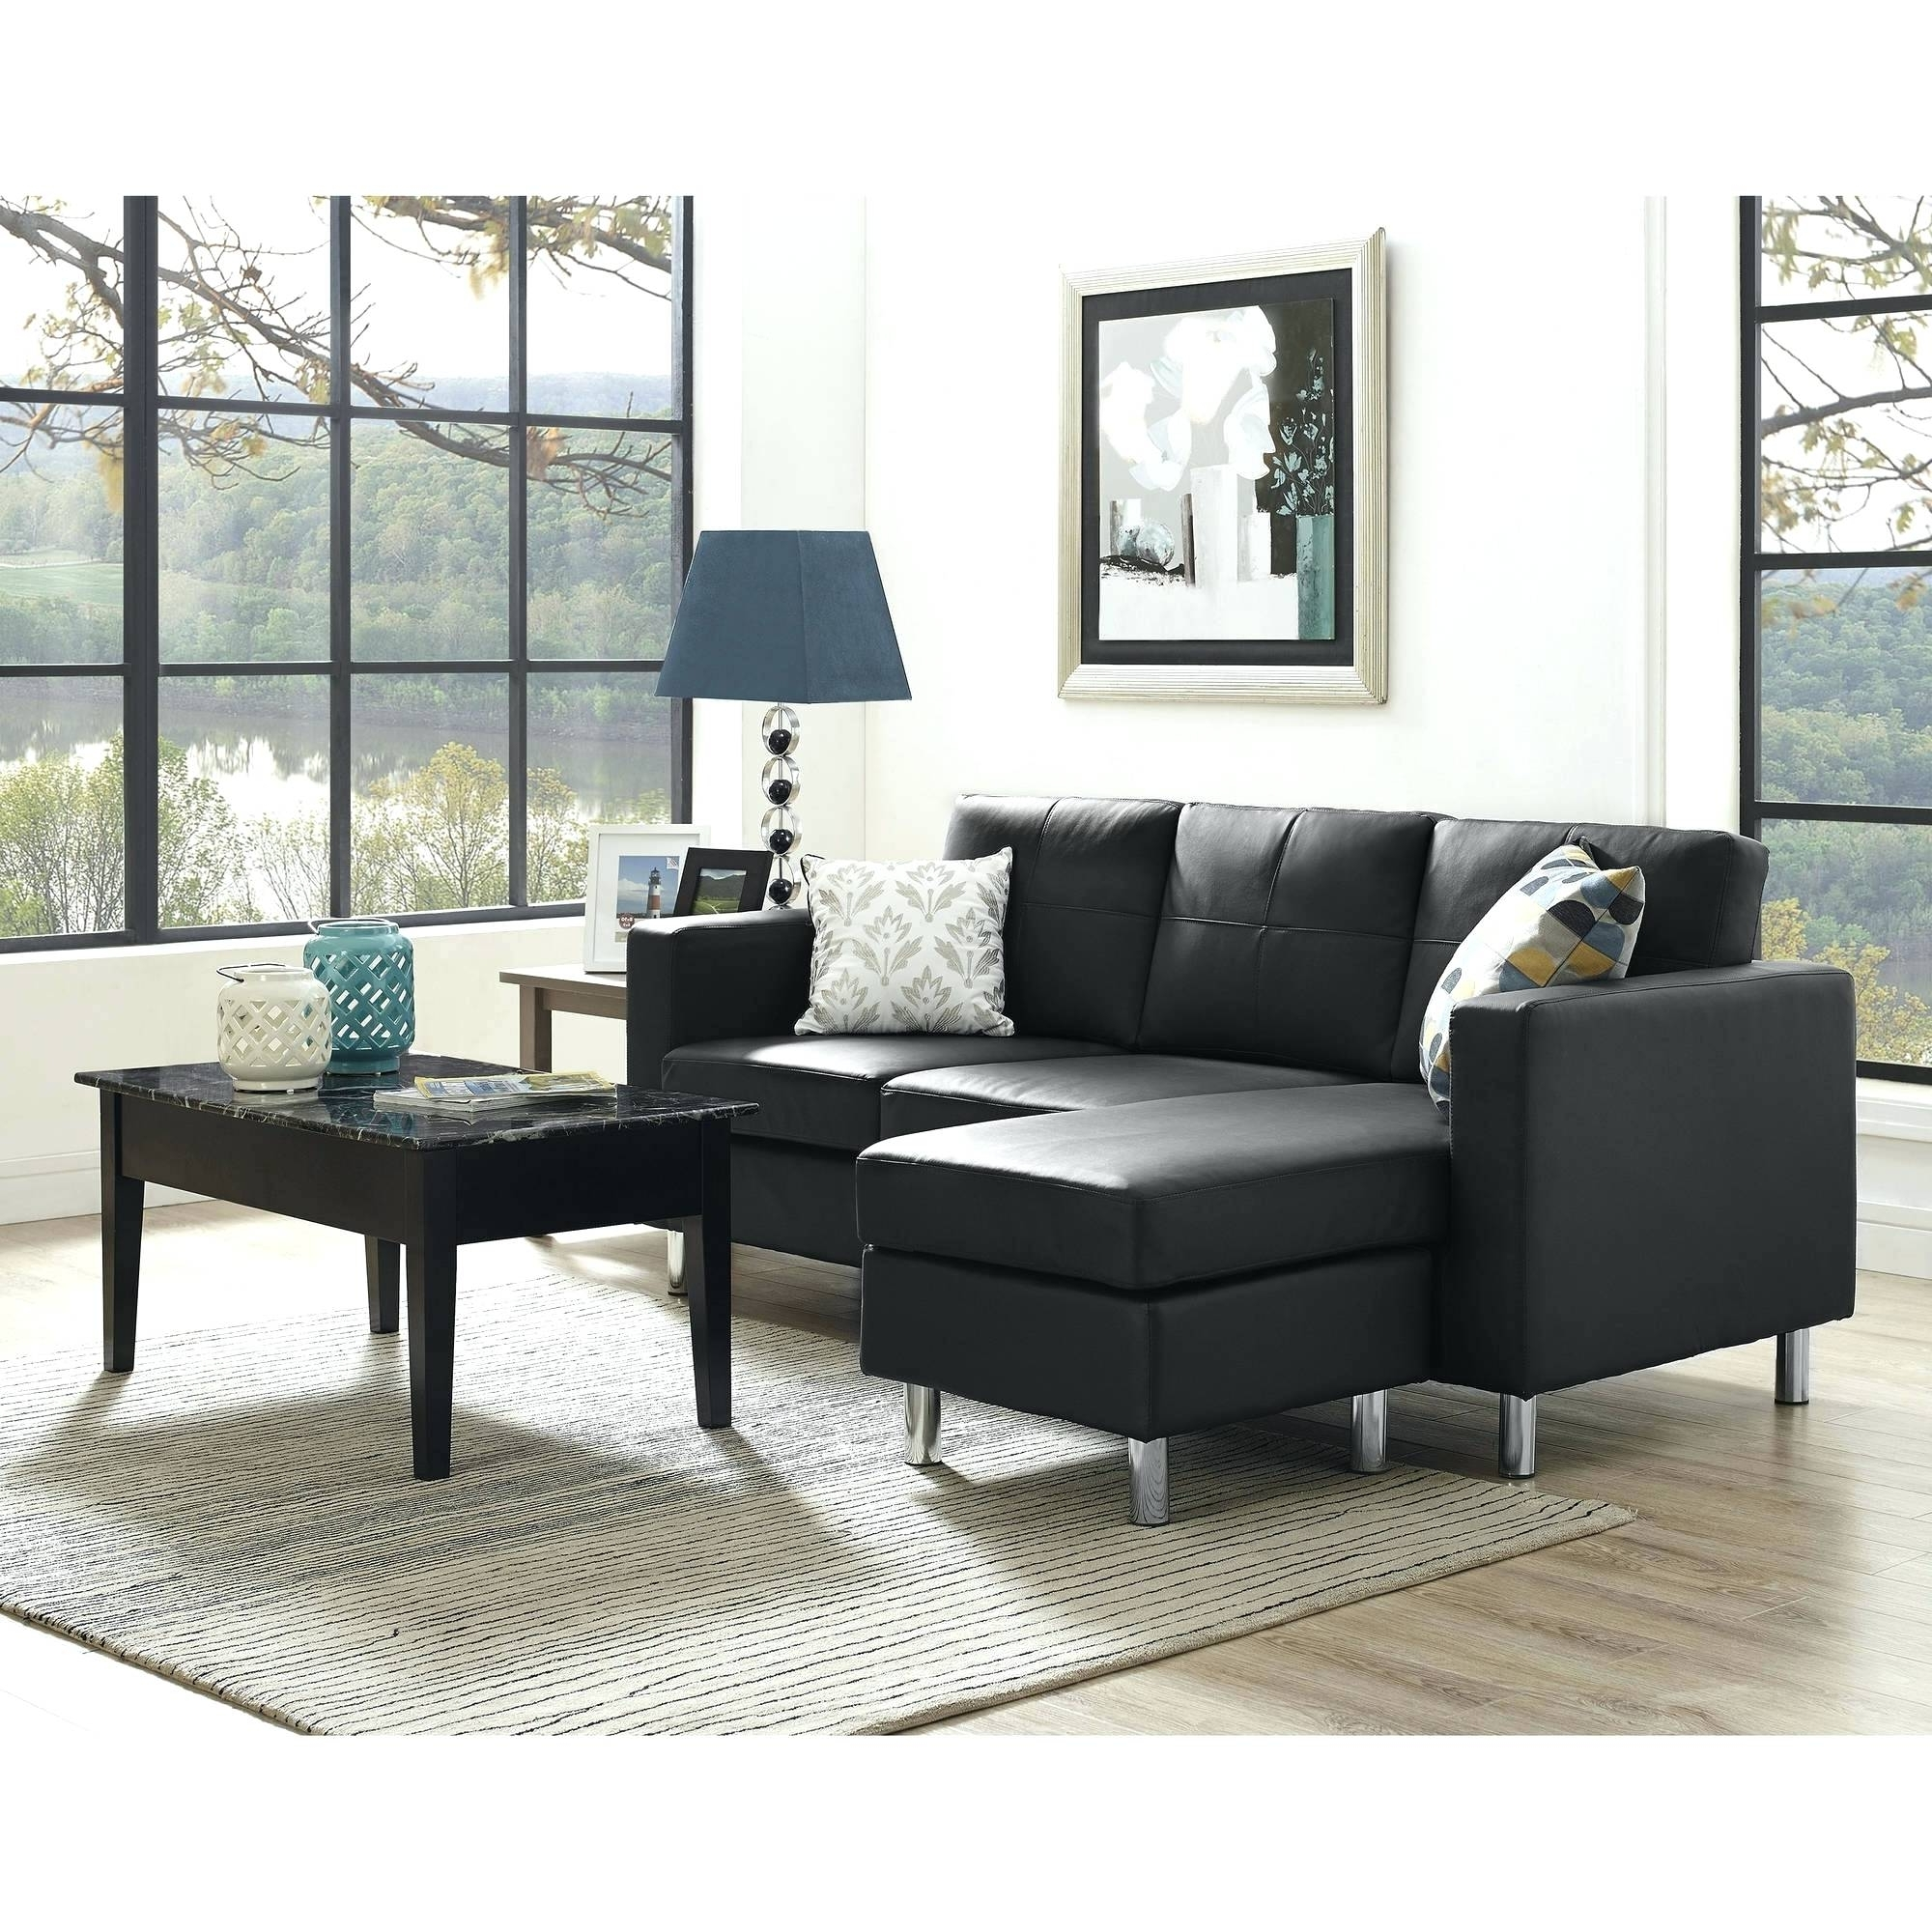 Sectional Sofas For Small Spaces With Recliners With Regard To Most Up To Date Leather Sectional Sofas Sawonderful Sa Contemporary For Small (View 16 of 20)